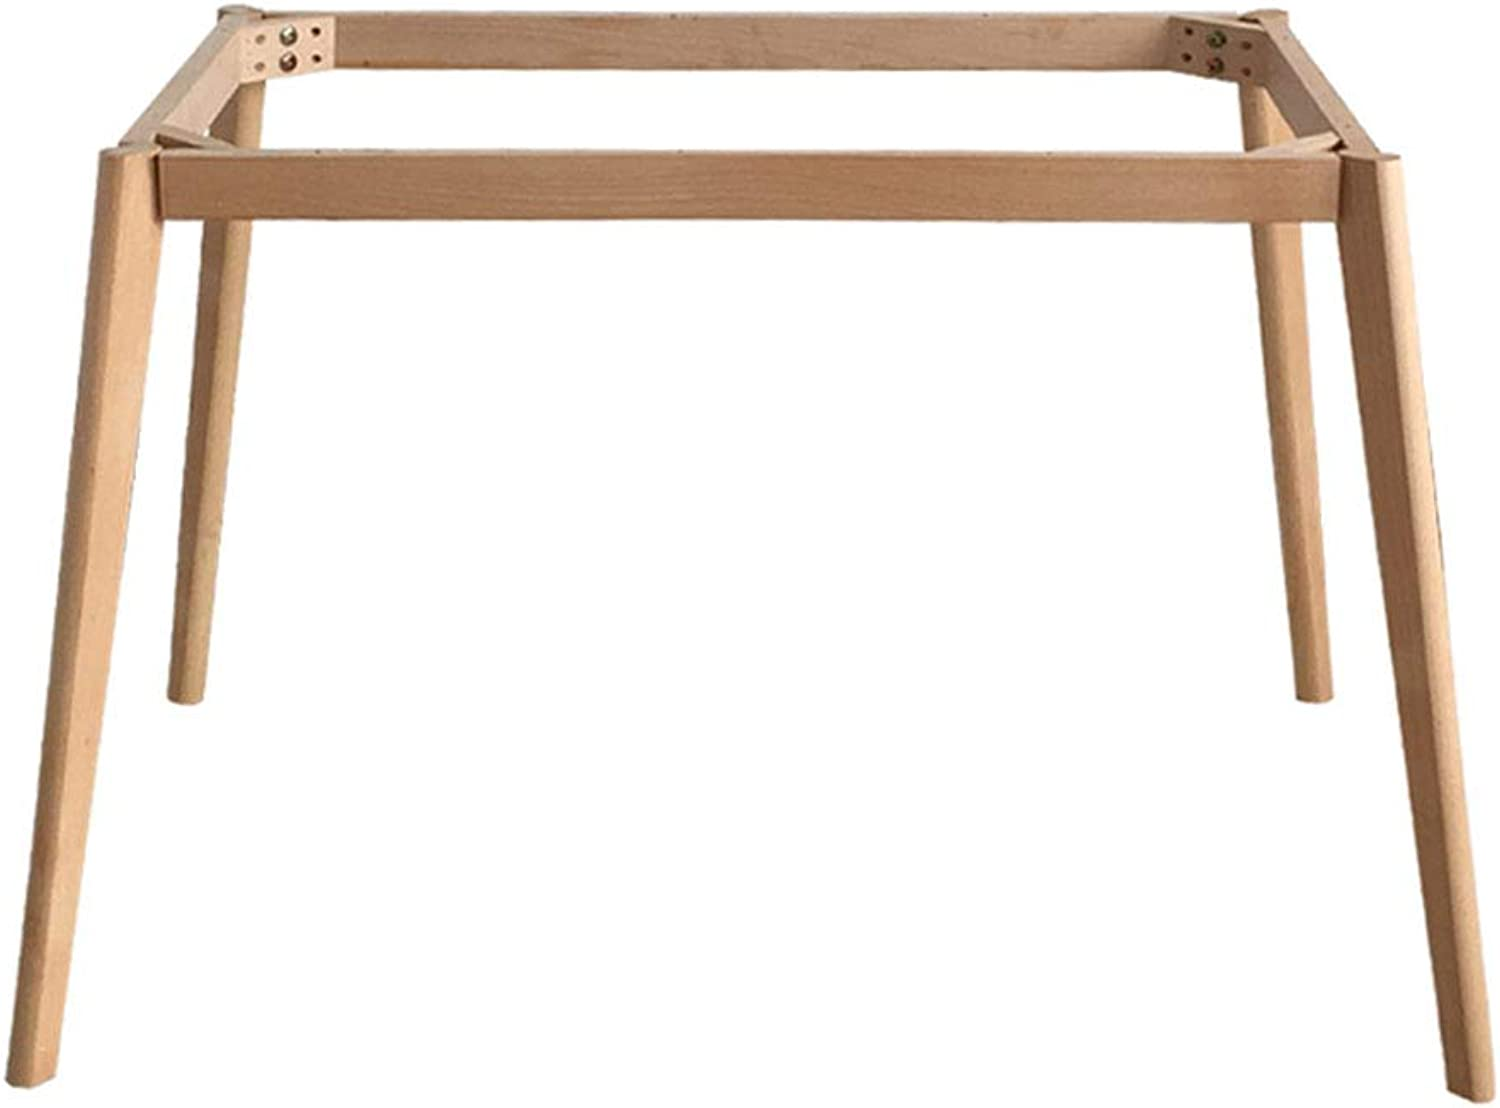 Furniture feet, Dining Table Legs, Frame, Solid Wood Table Legs, Brackets, Load-Bearing 100kg